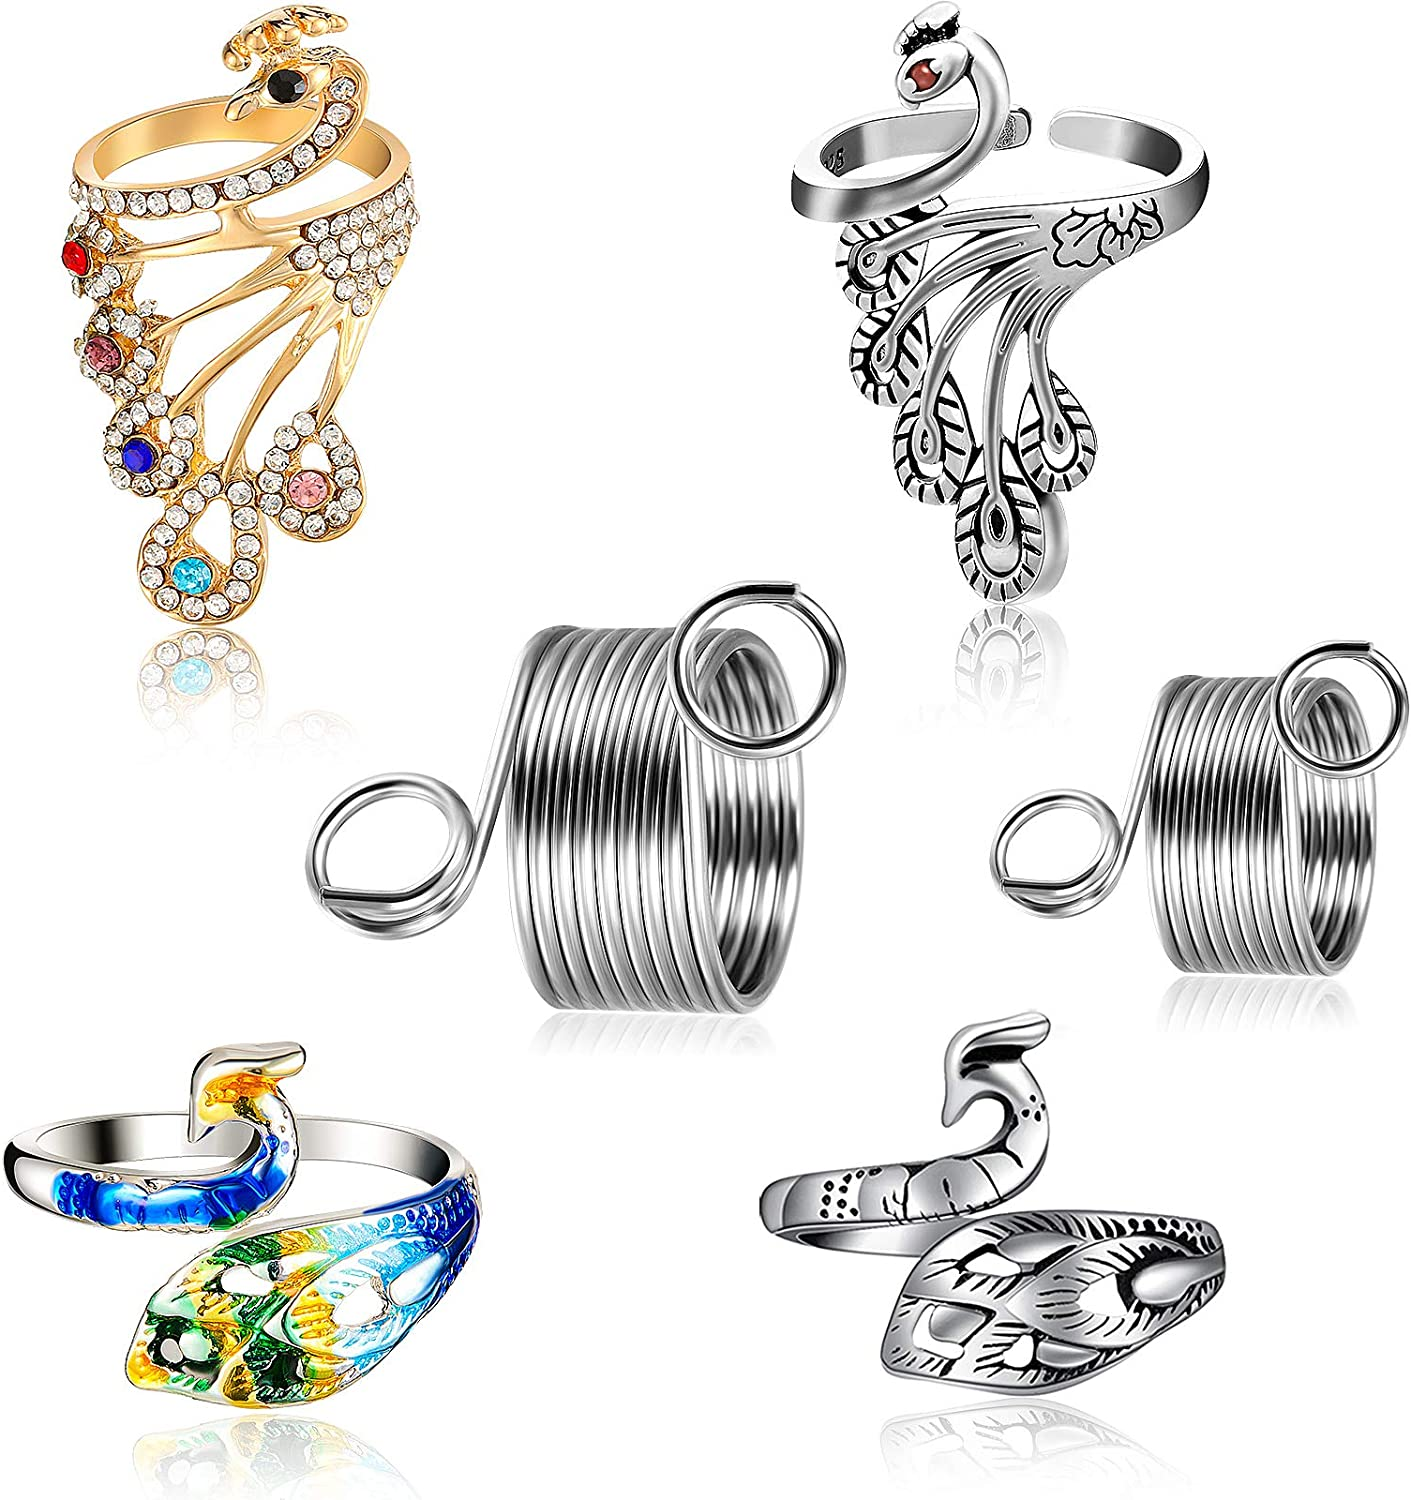 6 Pieces Knitting Loop Crochet Direct stock discount and Max 60% OFF Rings Accessories Se